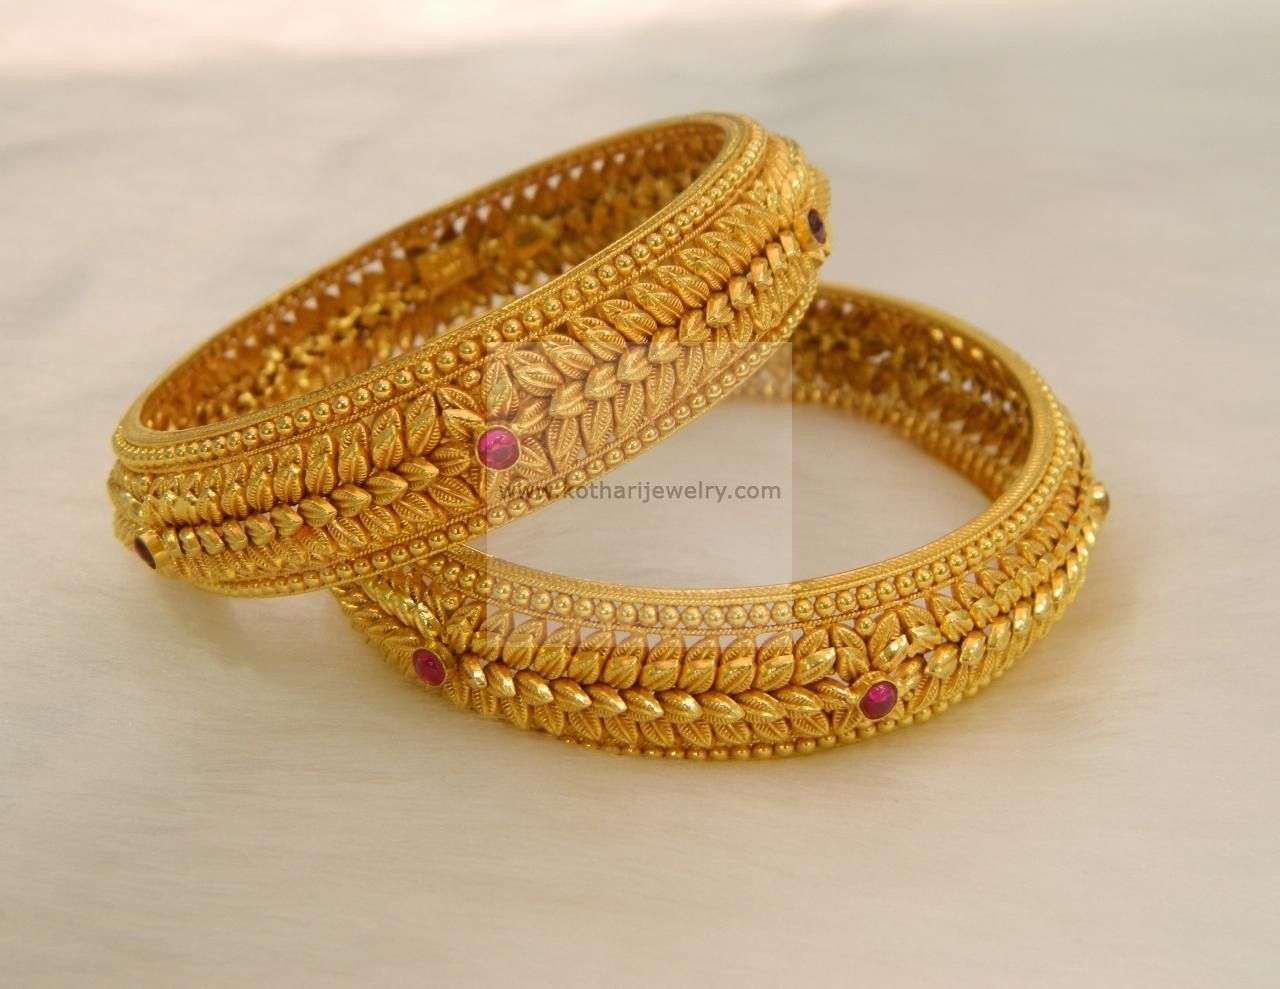 Tode Jewellery Bridal Jewl Pinterest Bangle